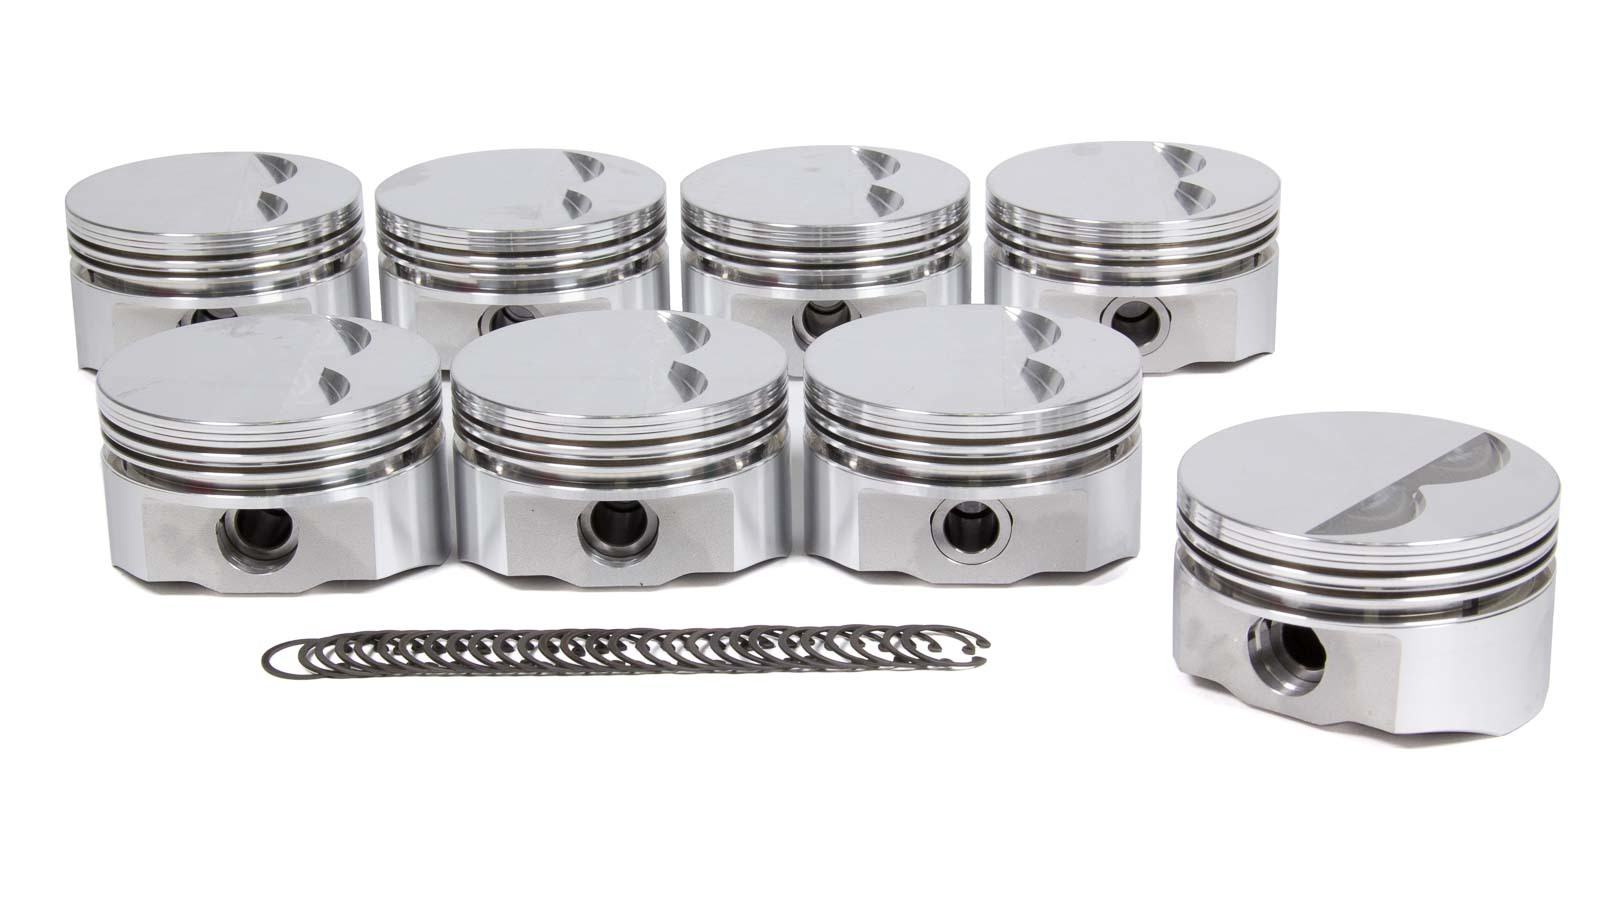 DSS Racing 8700-4030 Piston, E Series, Forged, 4.030 in Bore, 5/64 x 5/64 x 3/16 in Ring Grooves, Minus 5.0 cc, Small Block Chevy, Set of 8